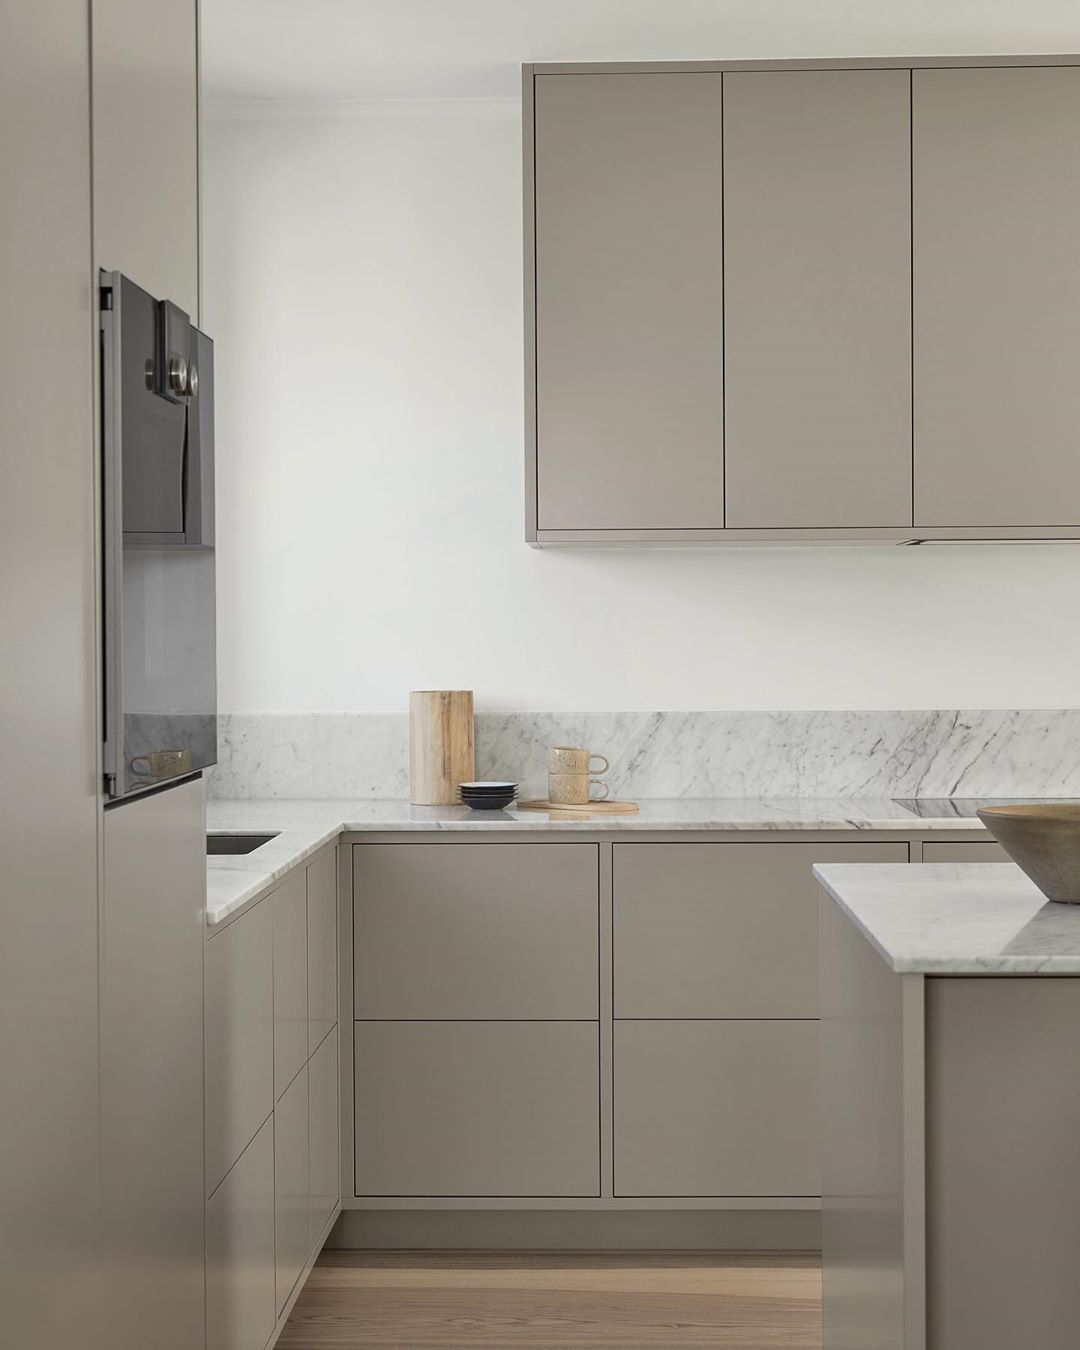 The Modern In Frame Kitchen Provides A Minimalist Feel Here With A White Marble Countertop With A Modern Grey Kitchen Minimalist Kitchen Design Nordic Kitchen